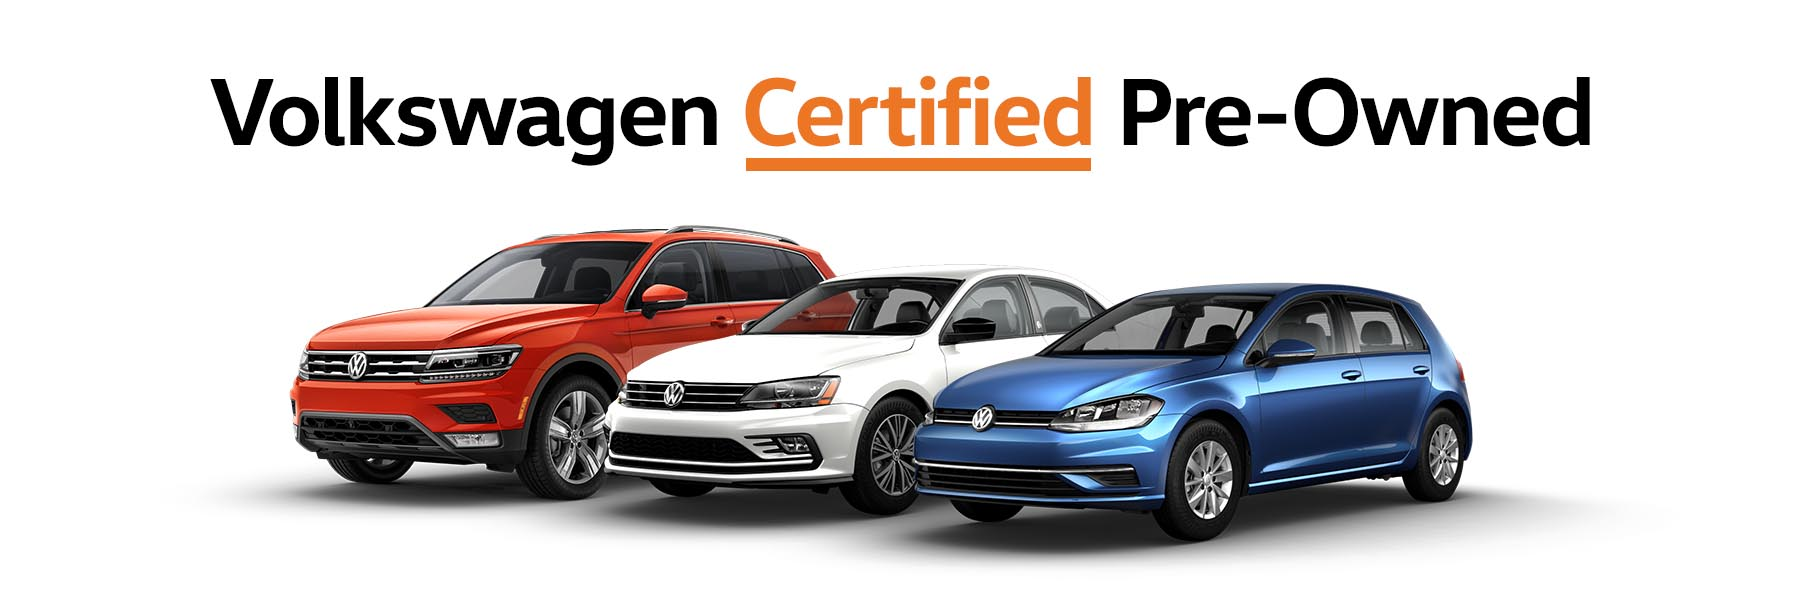 VW Certified Pre-Owned